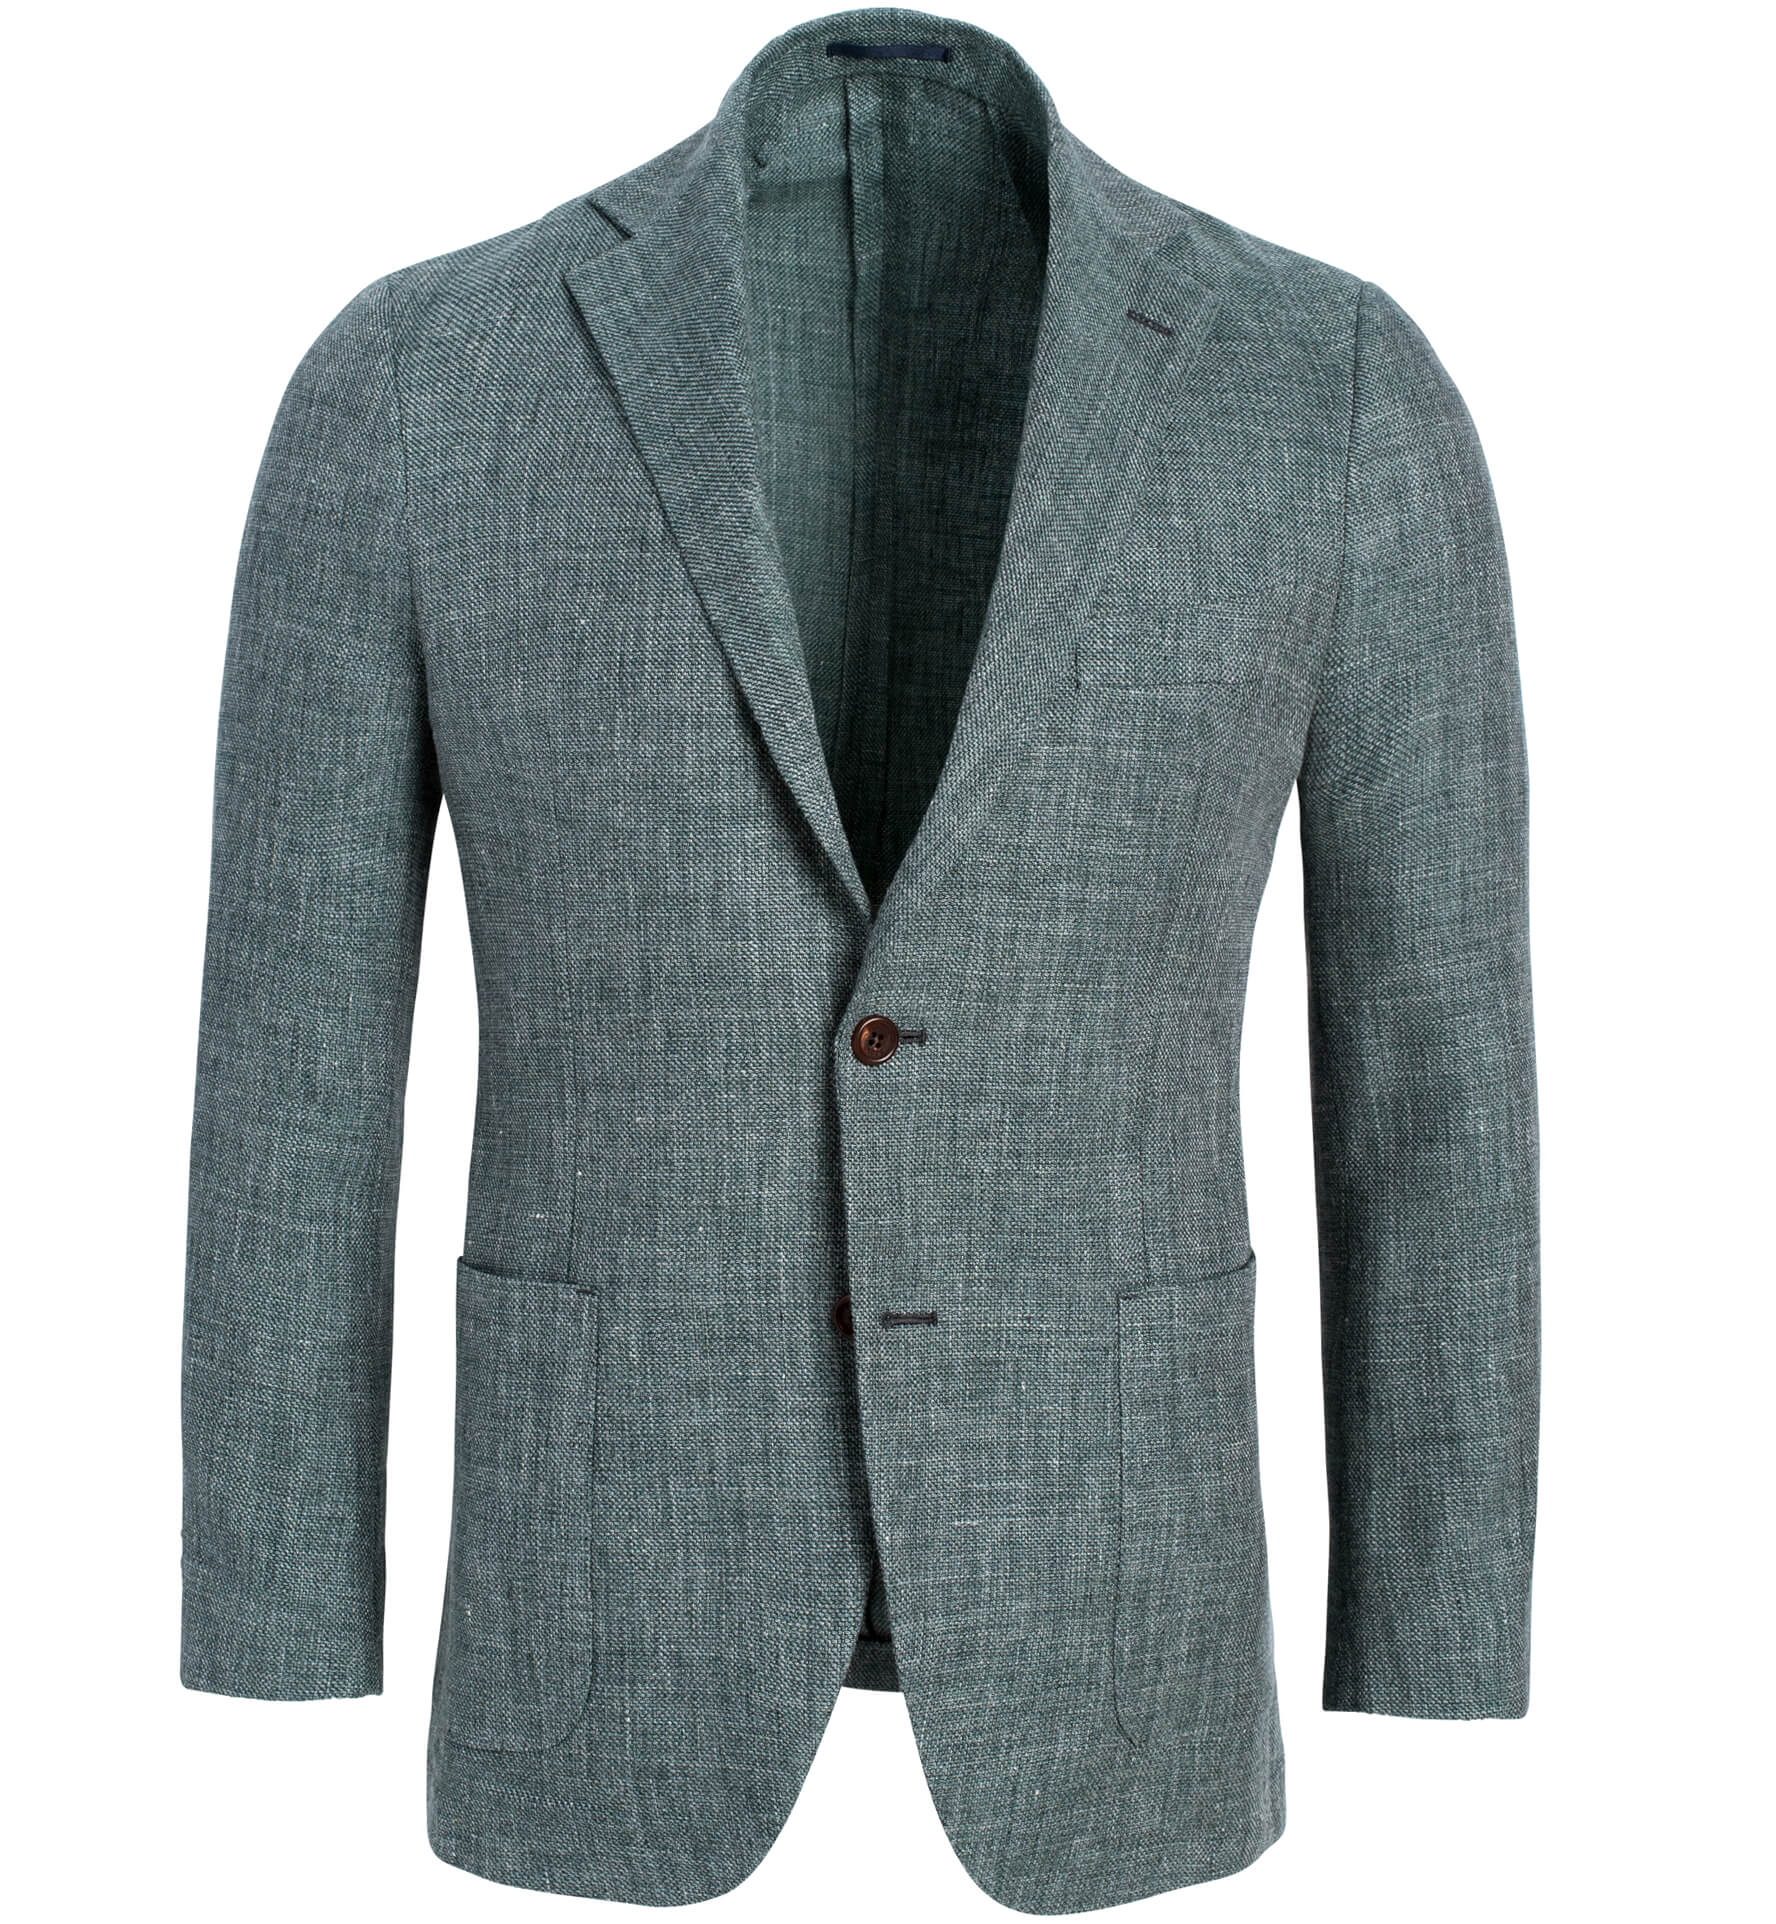 Zoom Image of Bedford Faded Sage Linen and Wool Hopsack Jacket